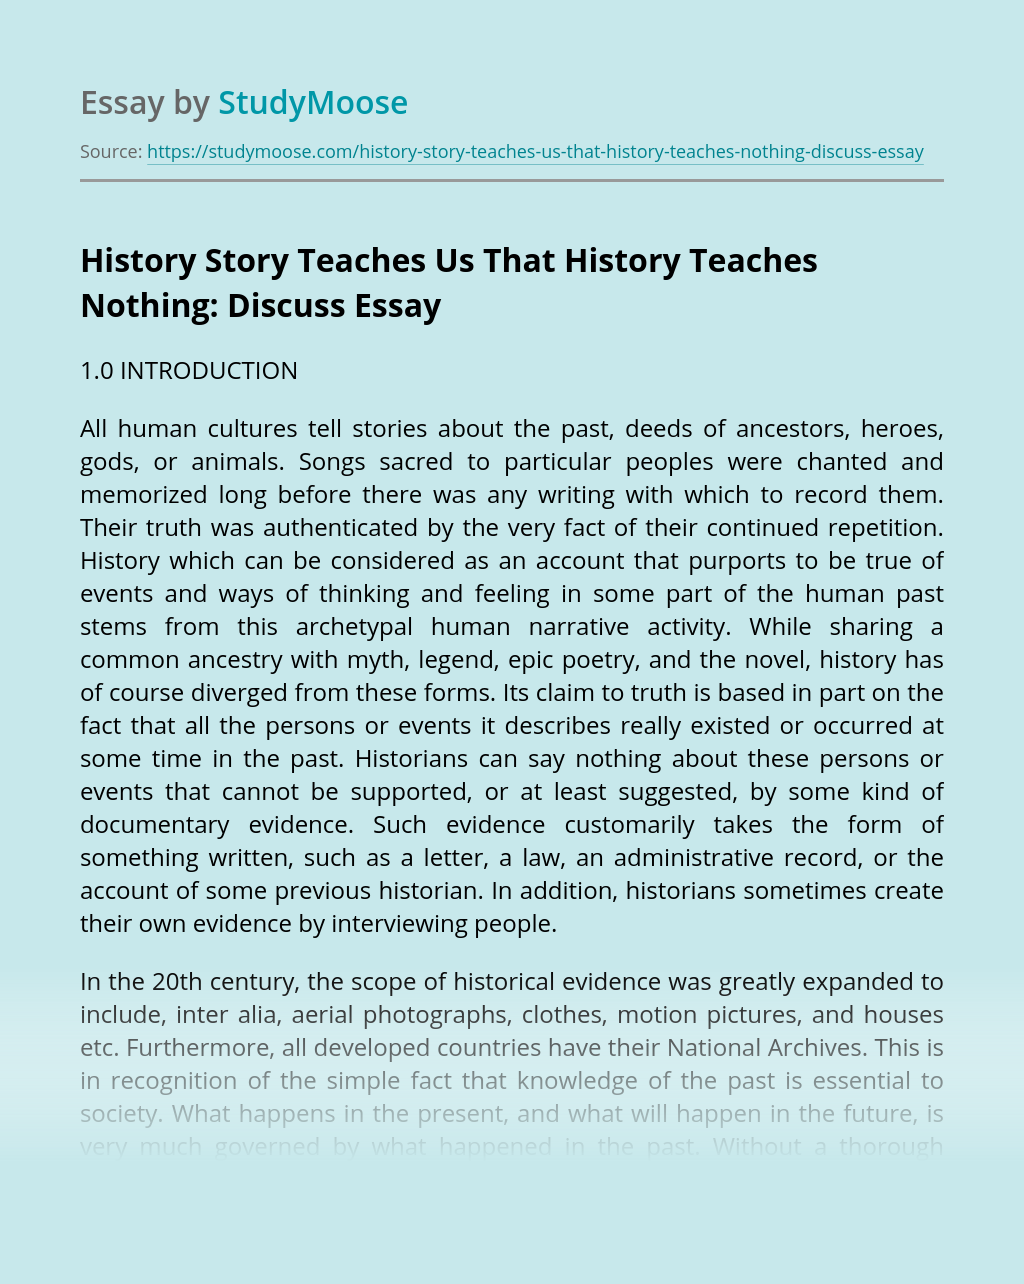 History Story Teaches Us That History Teaches Nothing: Discuss